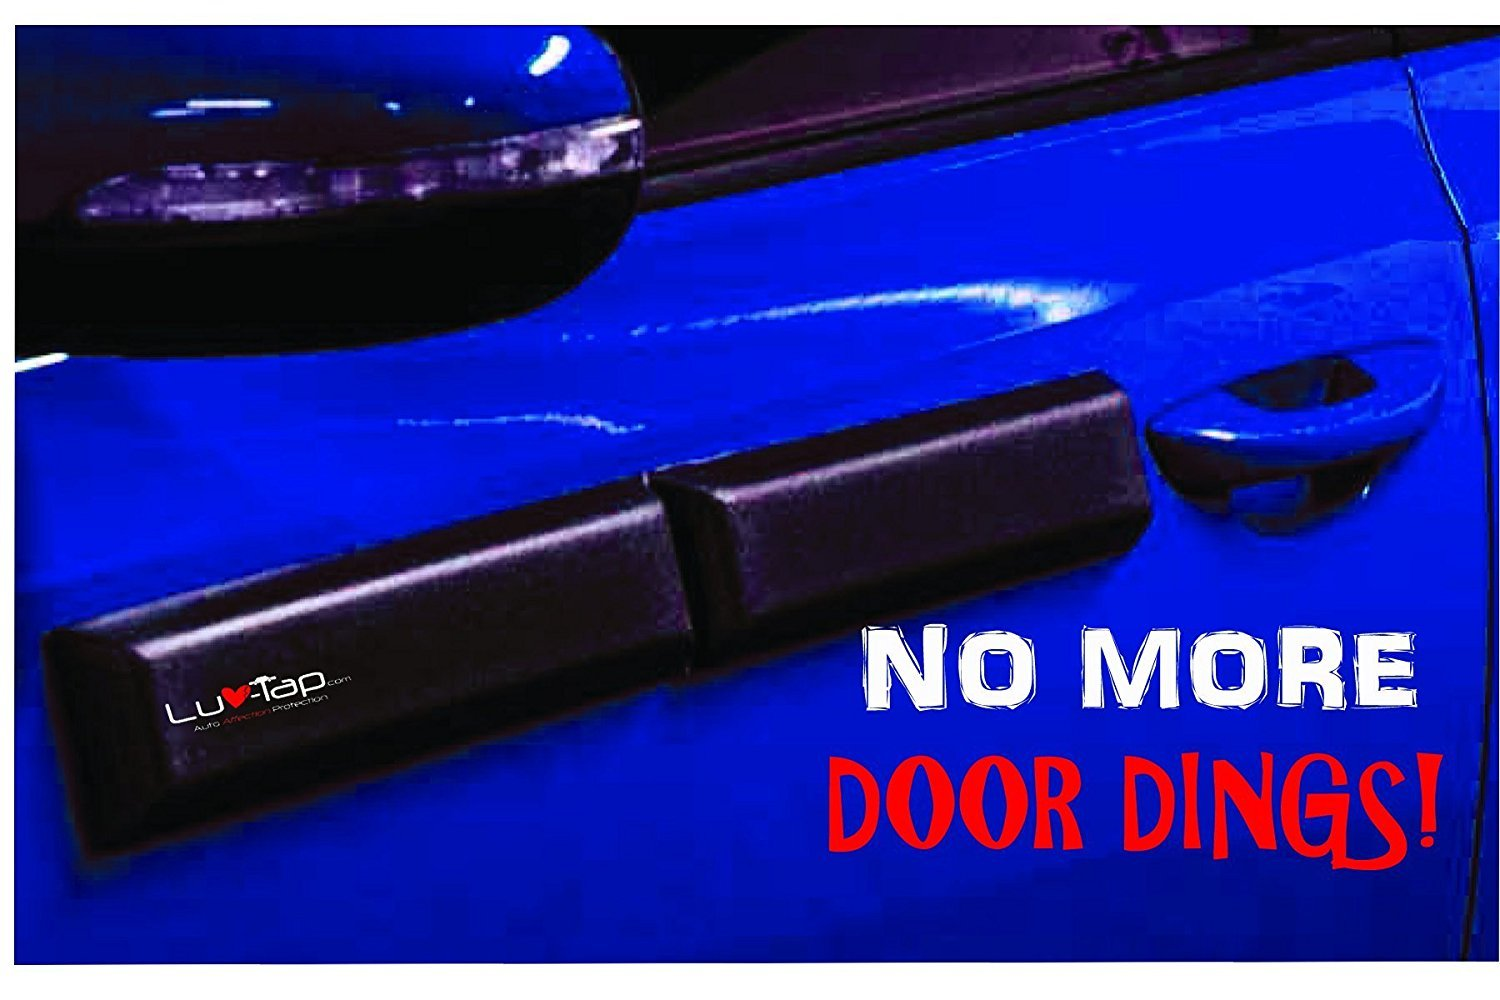 Ding Bats - Removable Magnetic Car Door Protector, Car Door Guard, Car Door Protection, Door Ding Dent Protector (With Security Cables) Luv-Tap